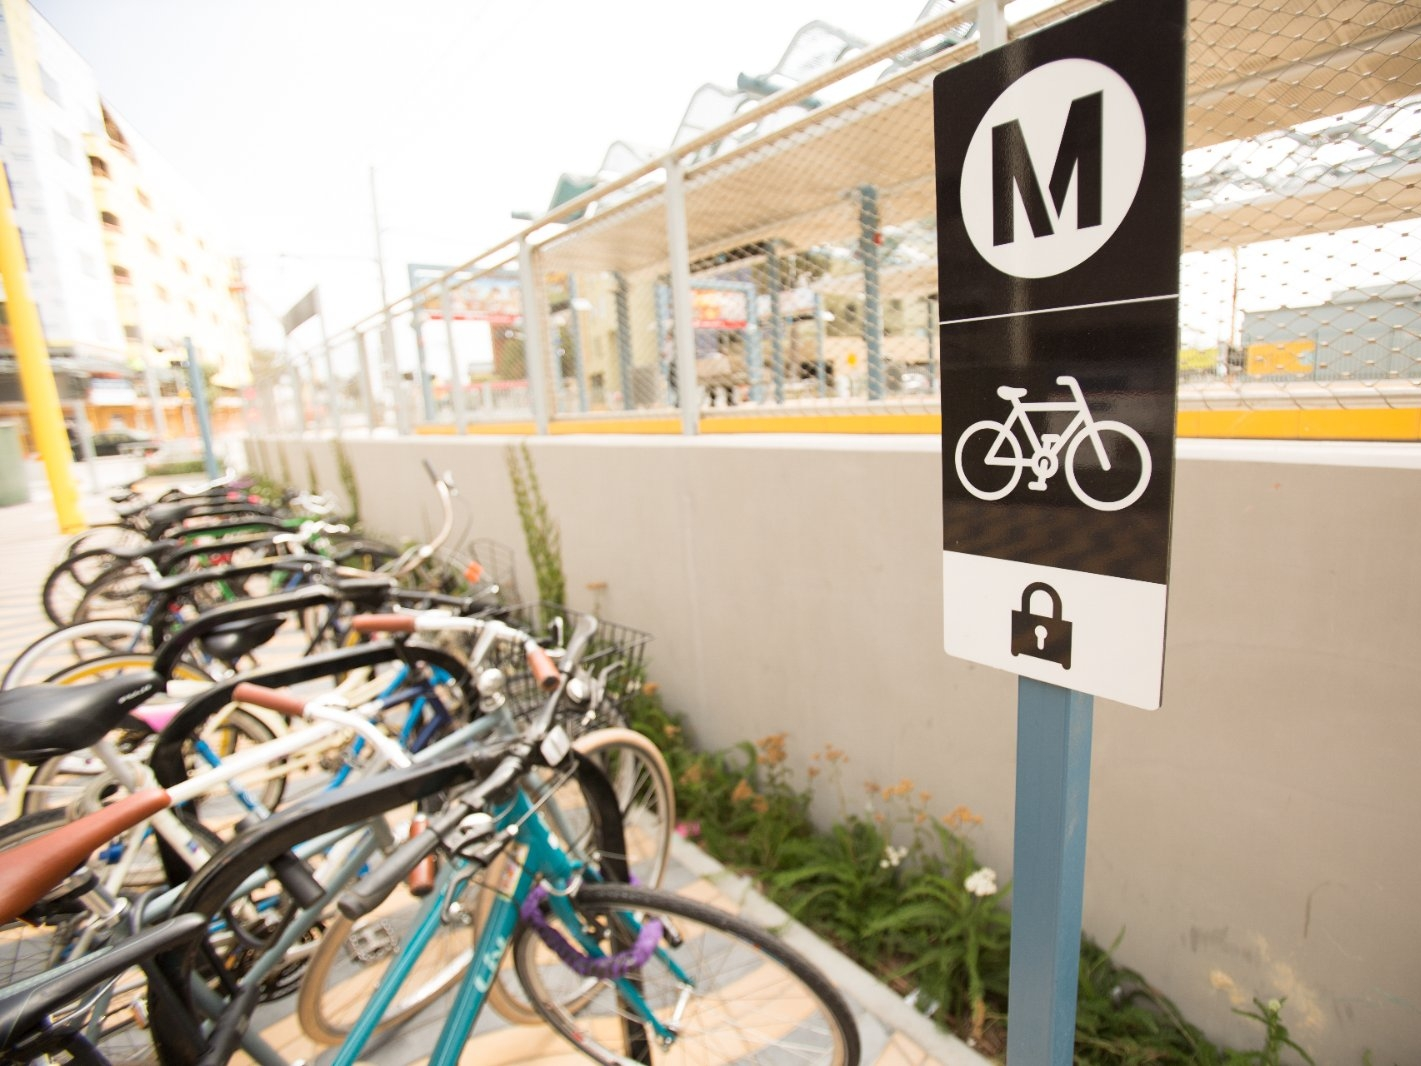 A sign for bicycle parking at a rail station.